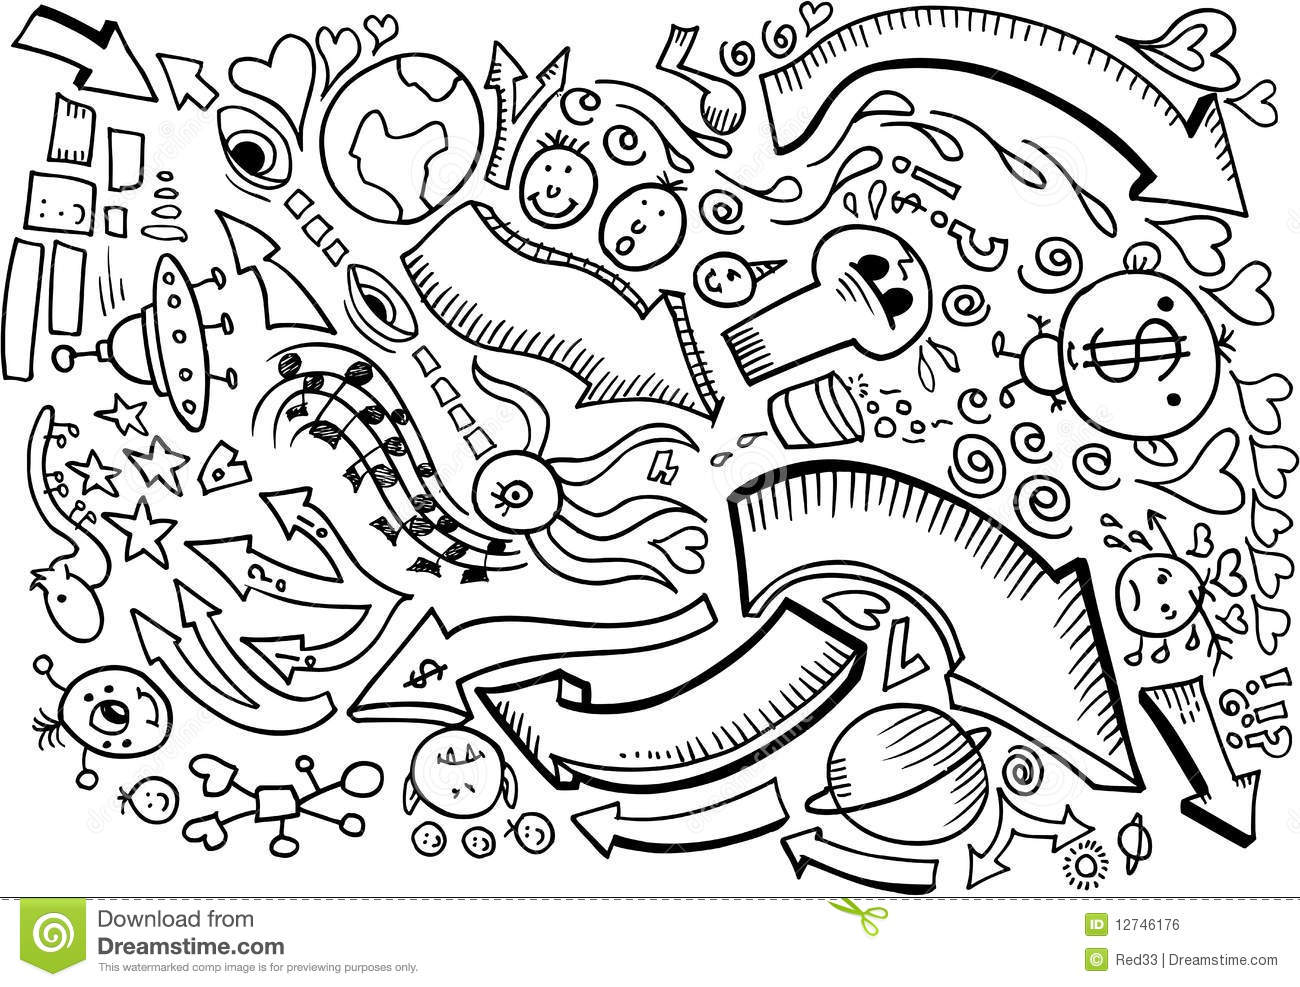 Doodle Sketch Drawing Vector Stock Vector Illustration